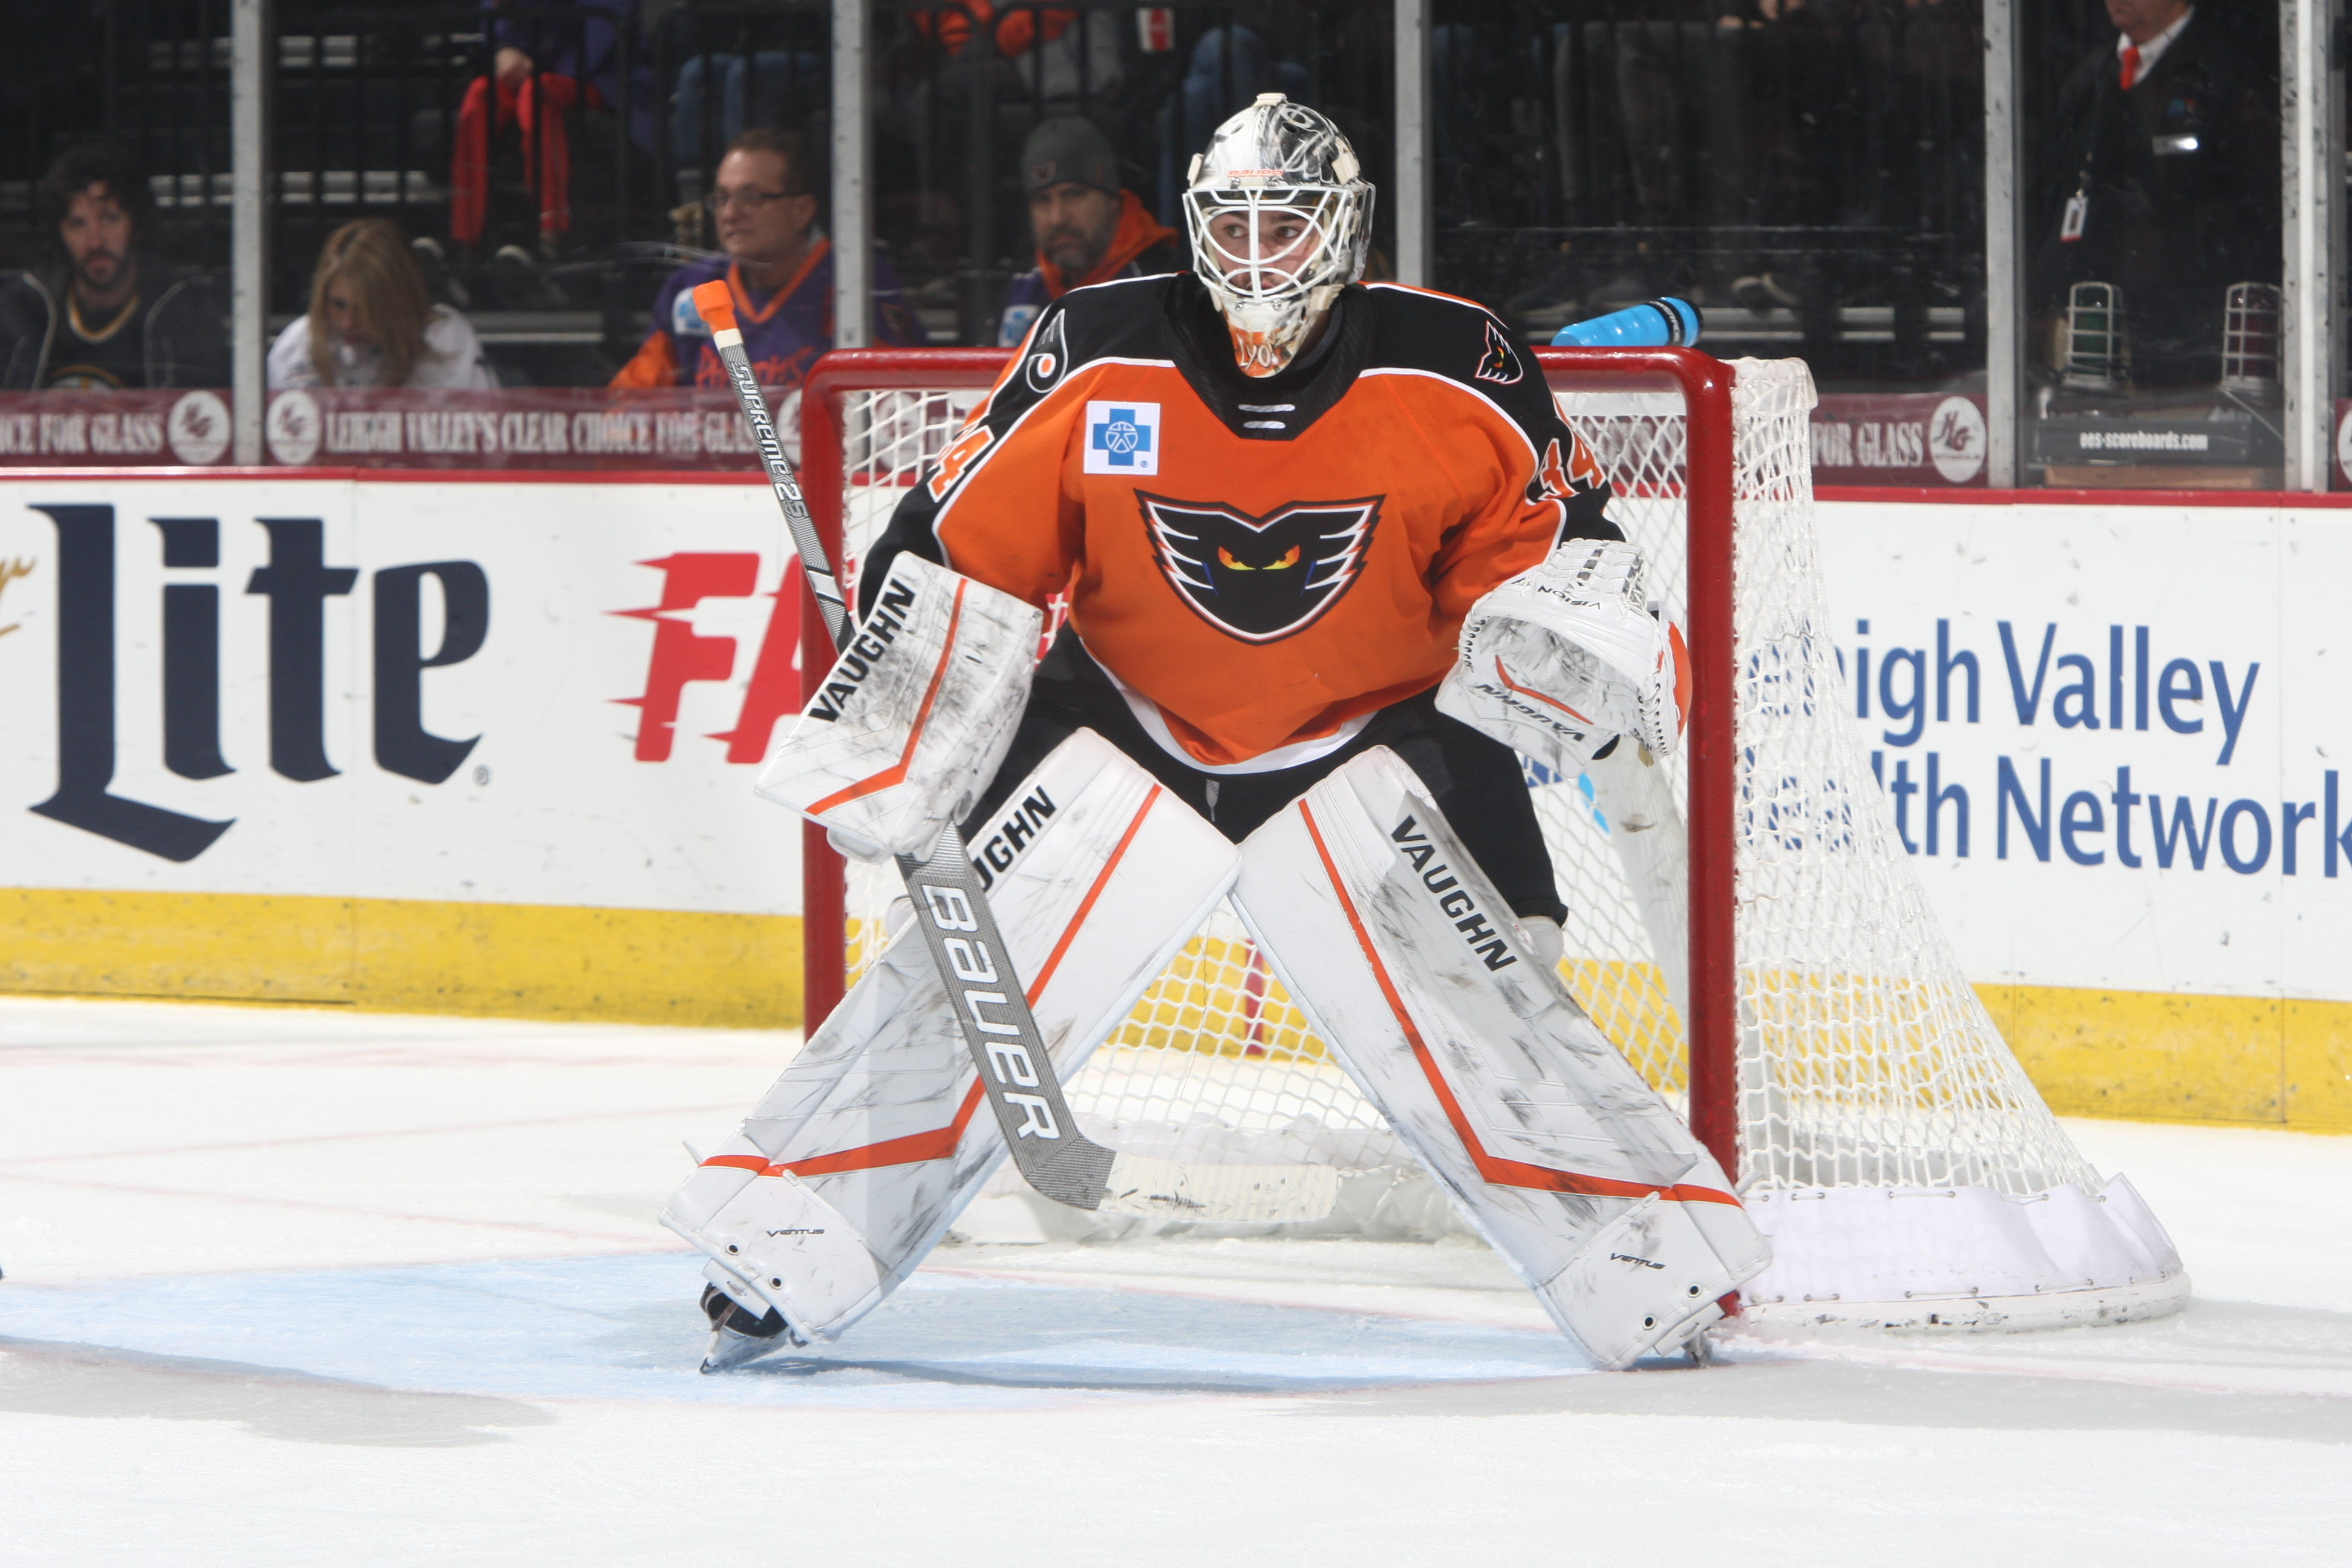 Phantoms Power Play – Presented by Provident Bank (1/16 – 1/22)